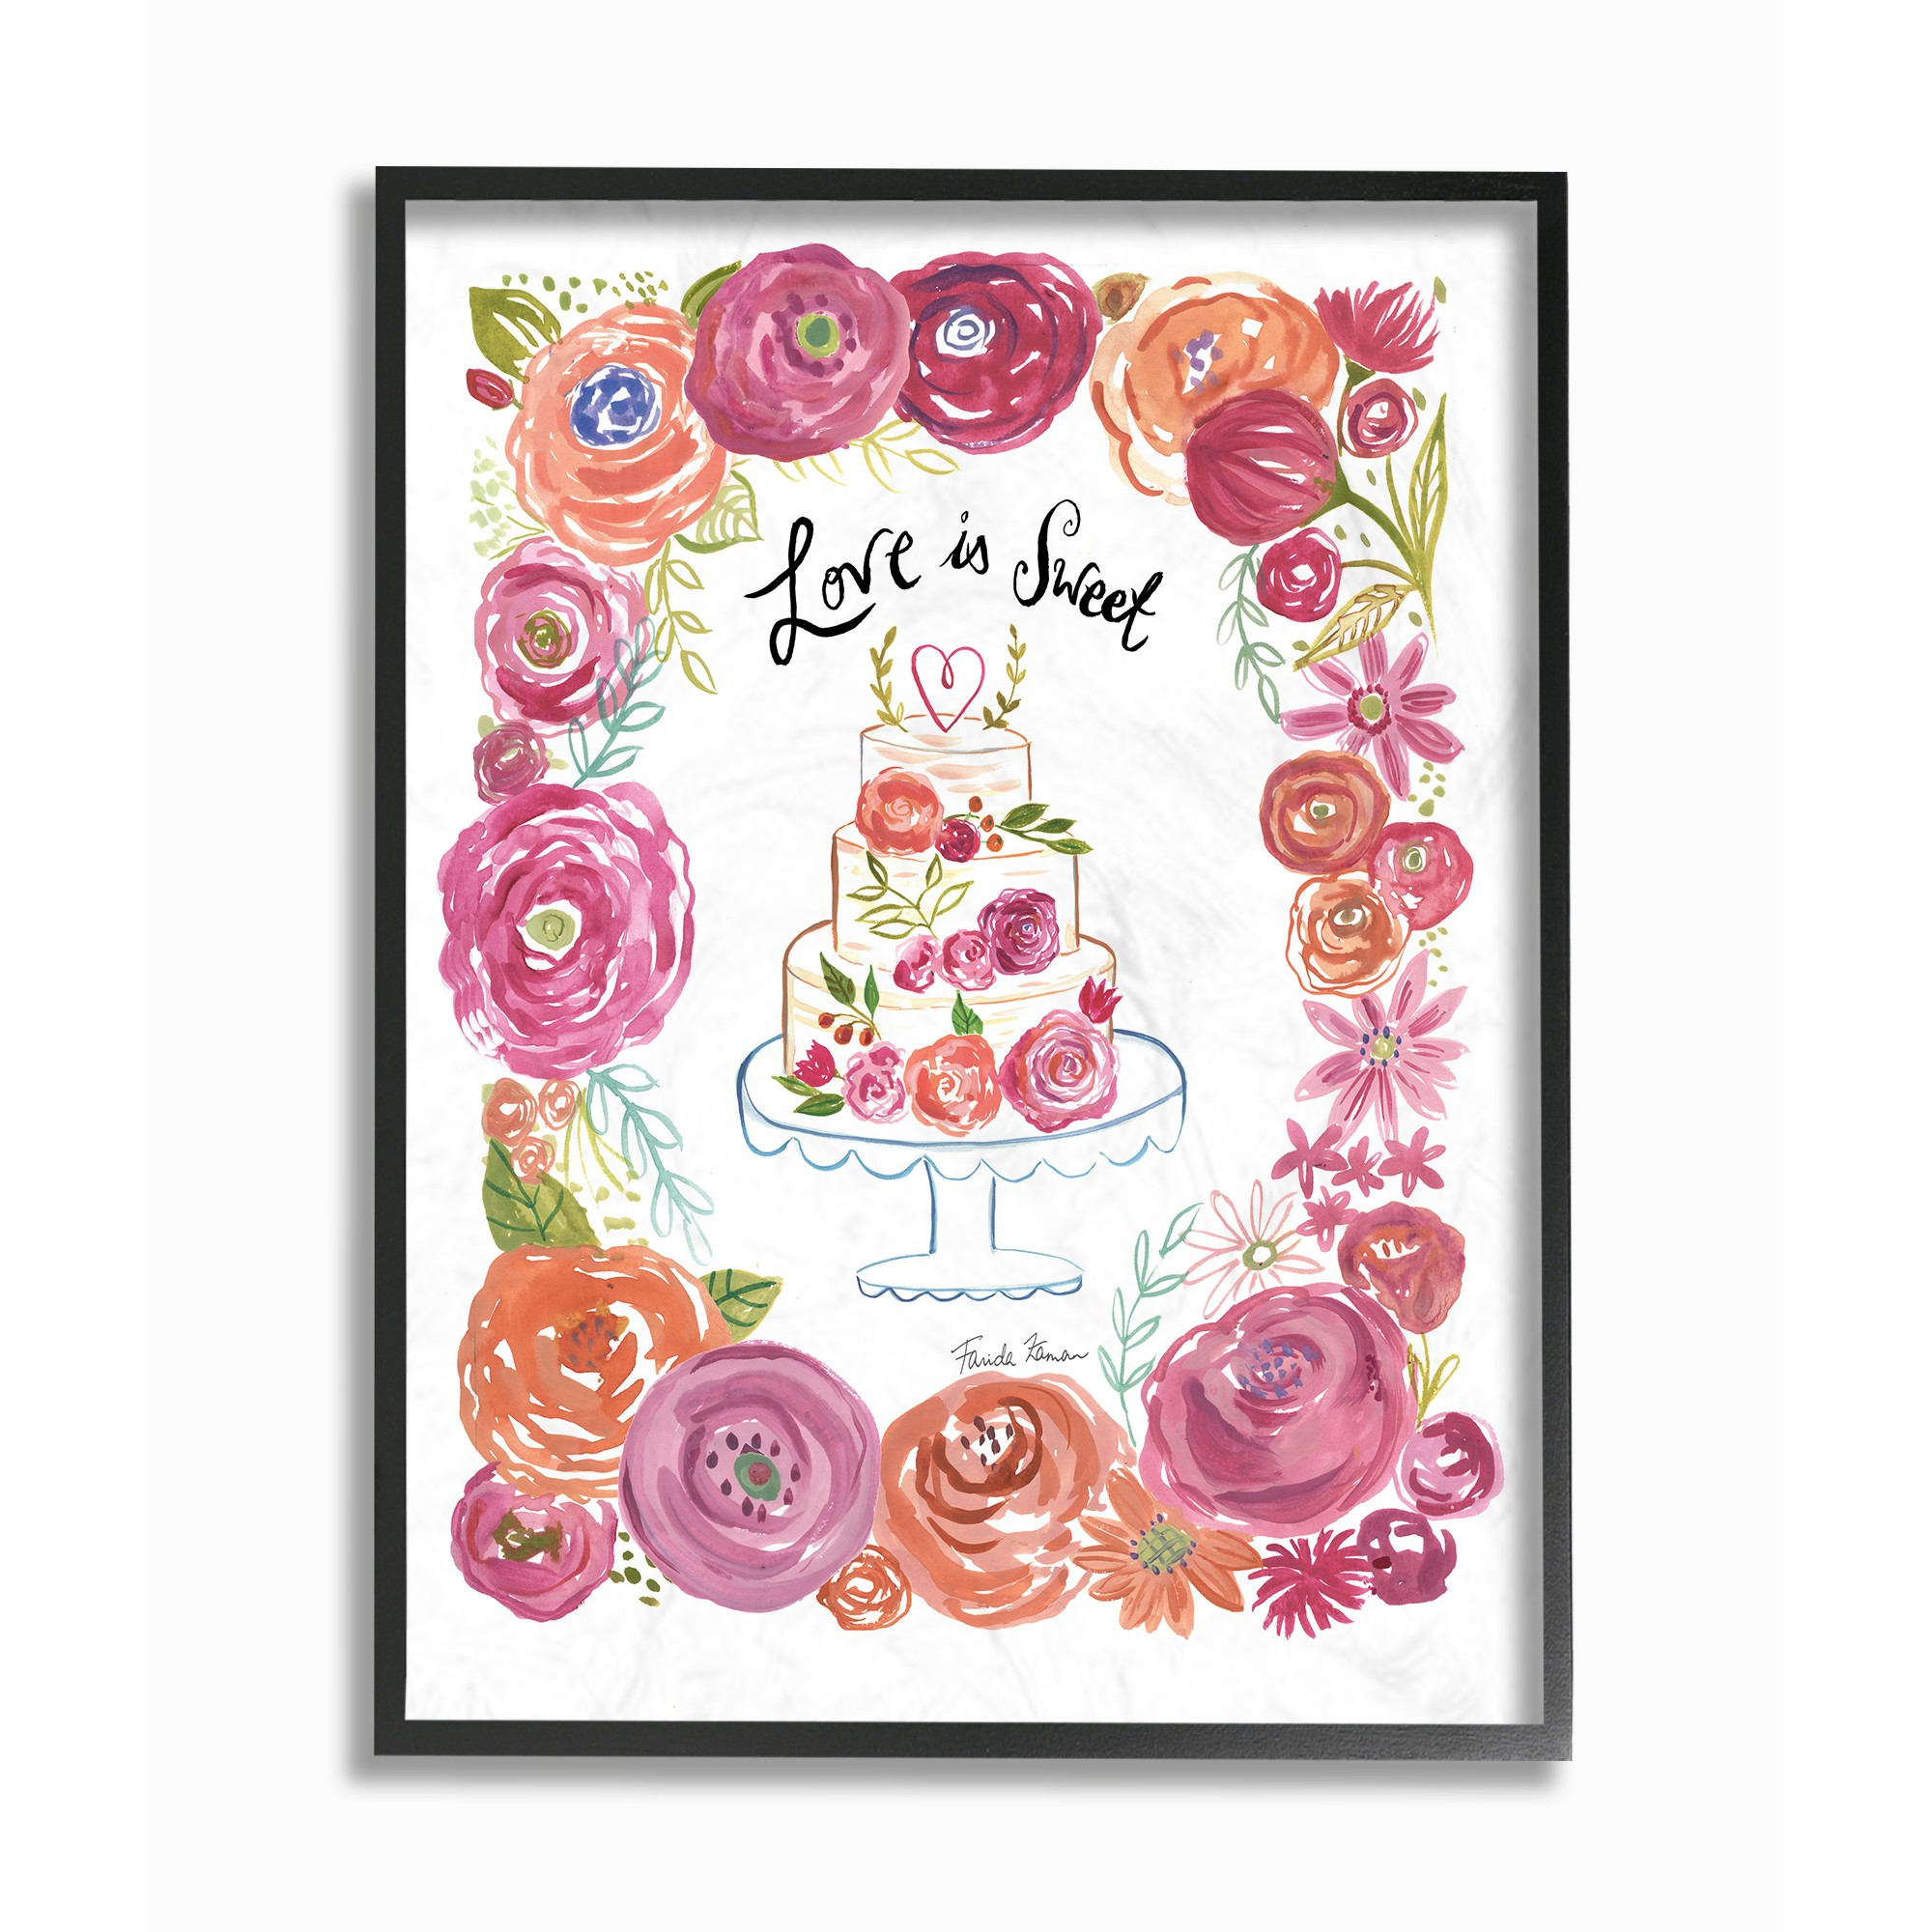 The Stupell Home Decor Collection Love Is Sweet Flowers And Cake Framed Giclee Texturized... by Stupell Industries